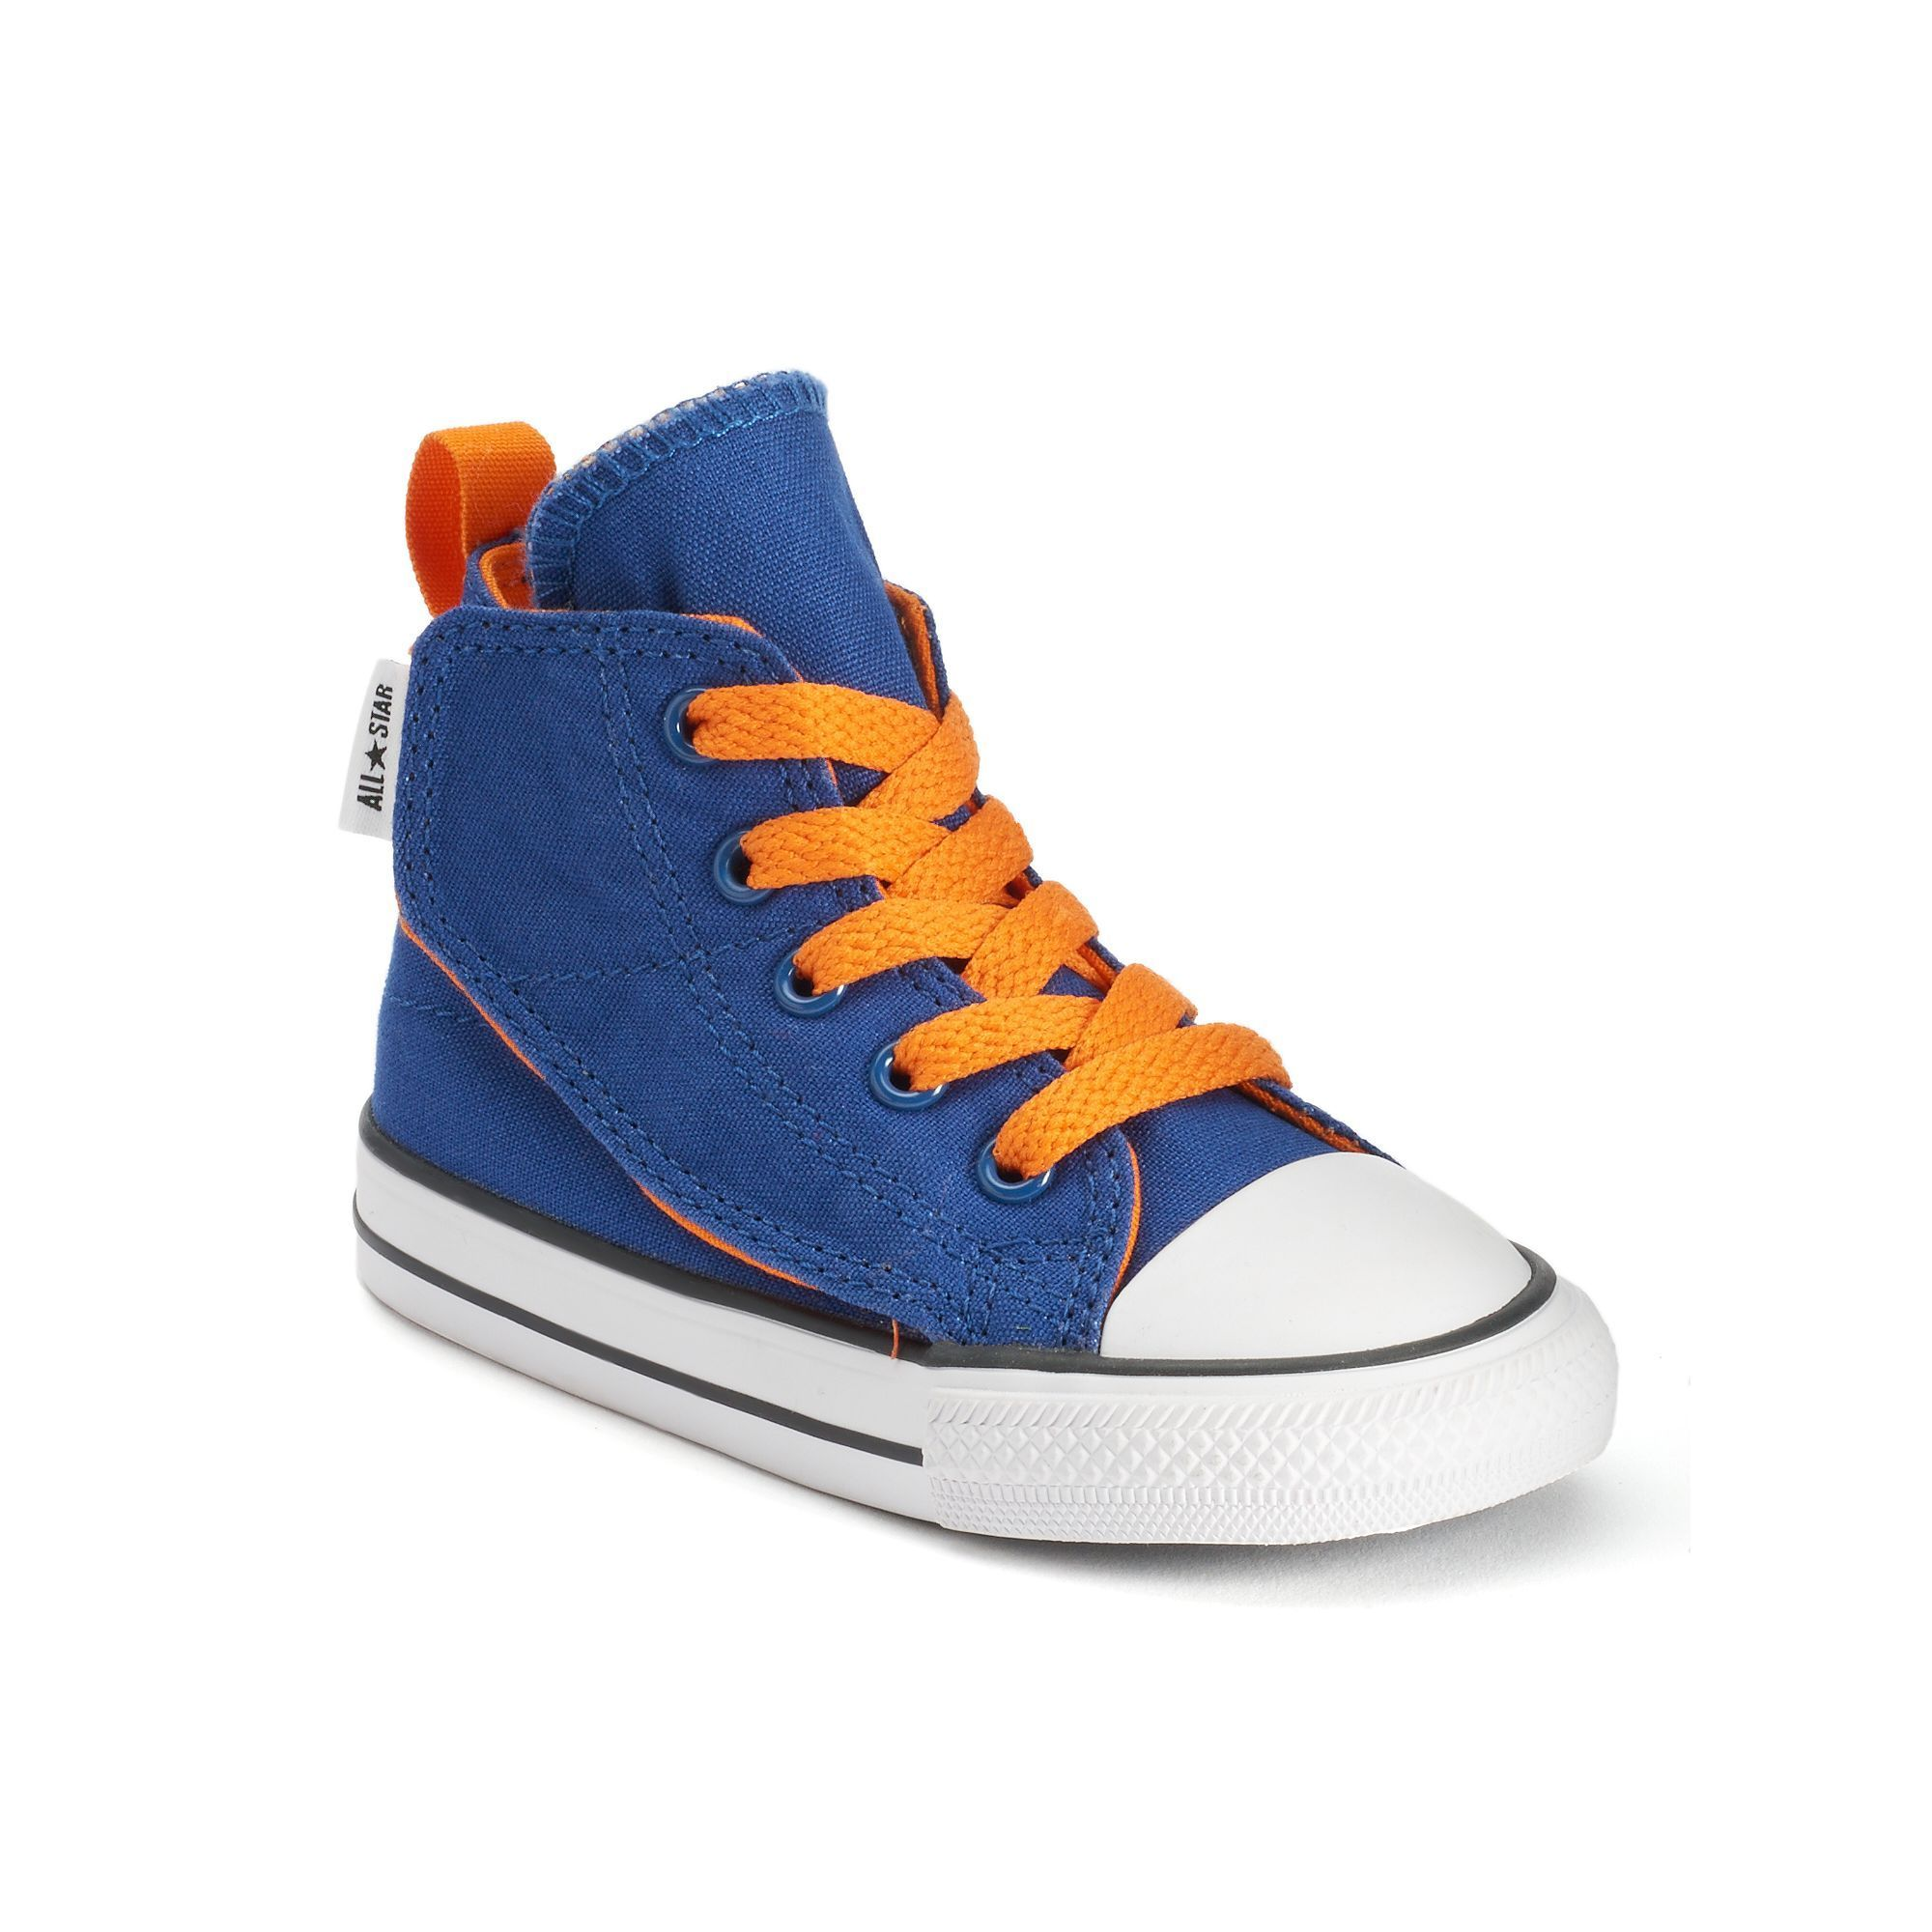 9f08d05a32 Baby   Toddler Converse Chuck Taylor All Star Simple Step High-Top  Sneakers